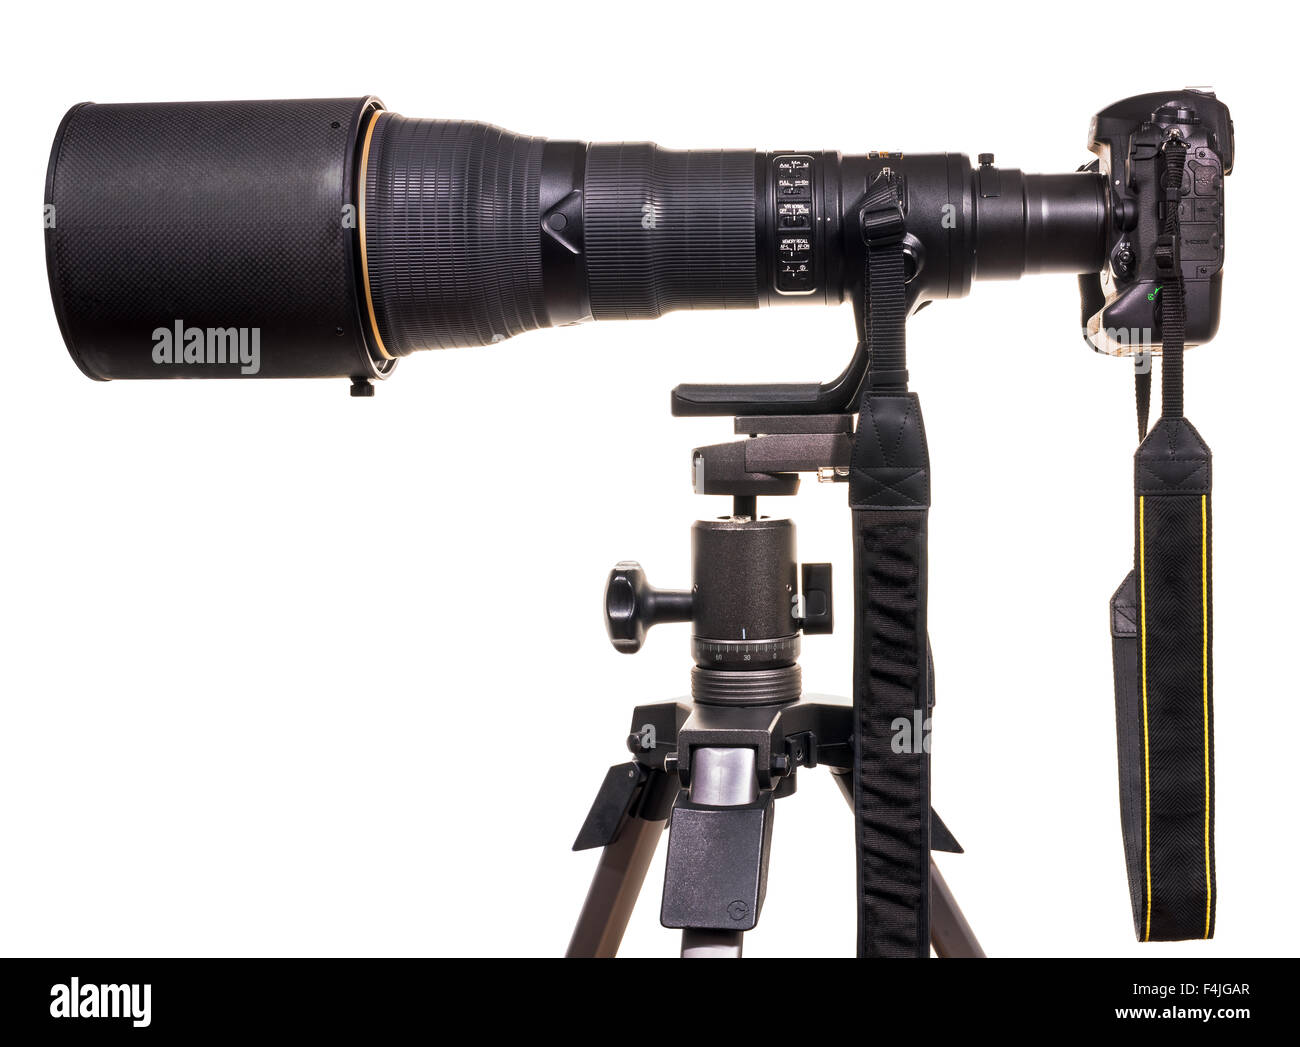 Dslr Camera On White Background Imágenes De Stock & Dslr Camera On ...